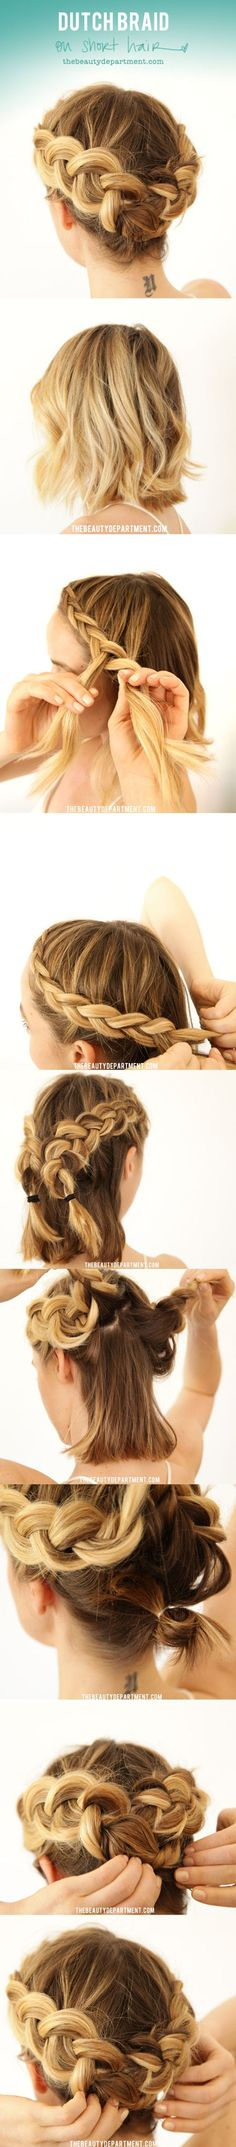 Dutch braid in short hair.